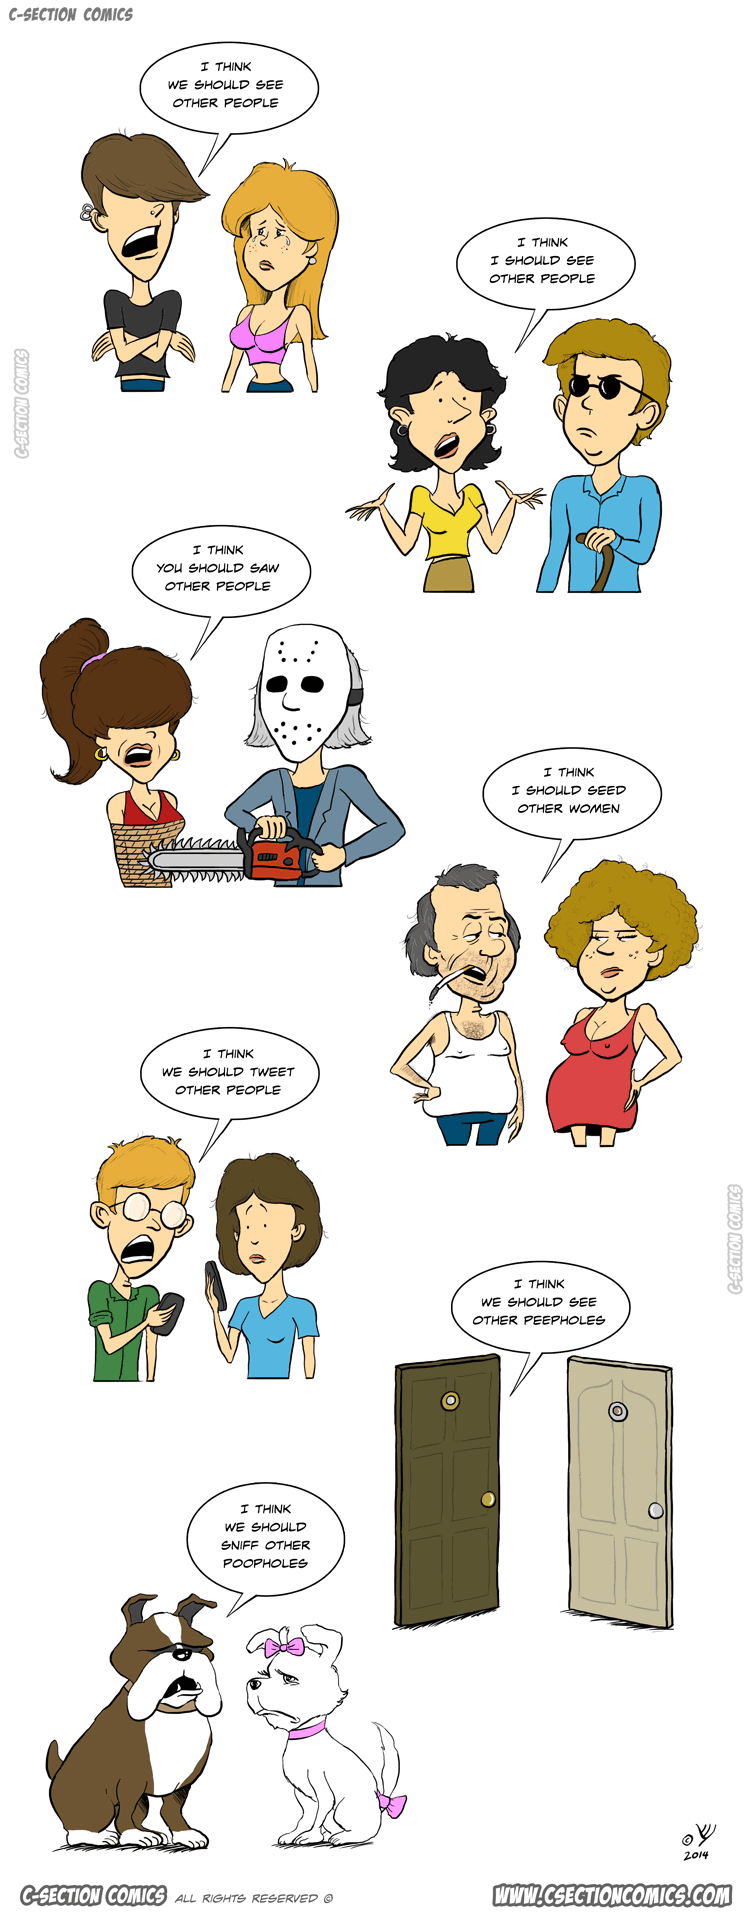 7 Breakup Phrases You Hope You'll Never Hear - Cartoon by C-Section Comics